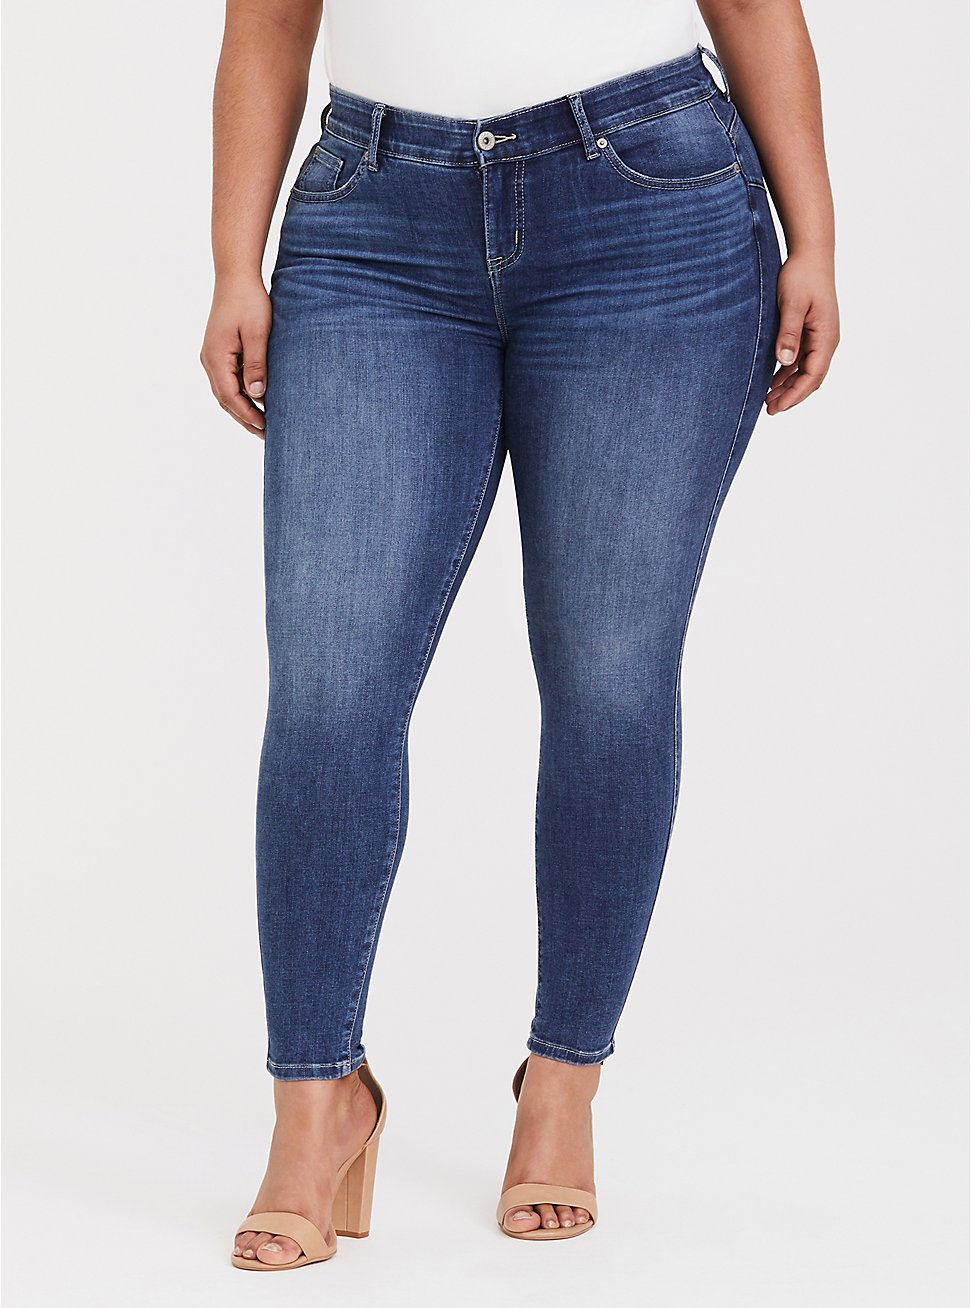 Bombshell Skinny Jean - Comfort Stretch Medium Wash, COOL BREEZE, hi-res